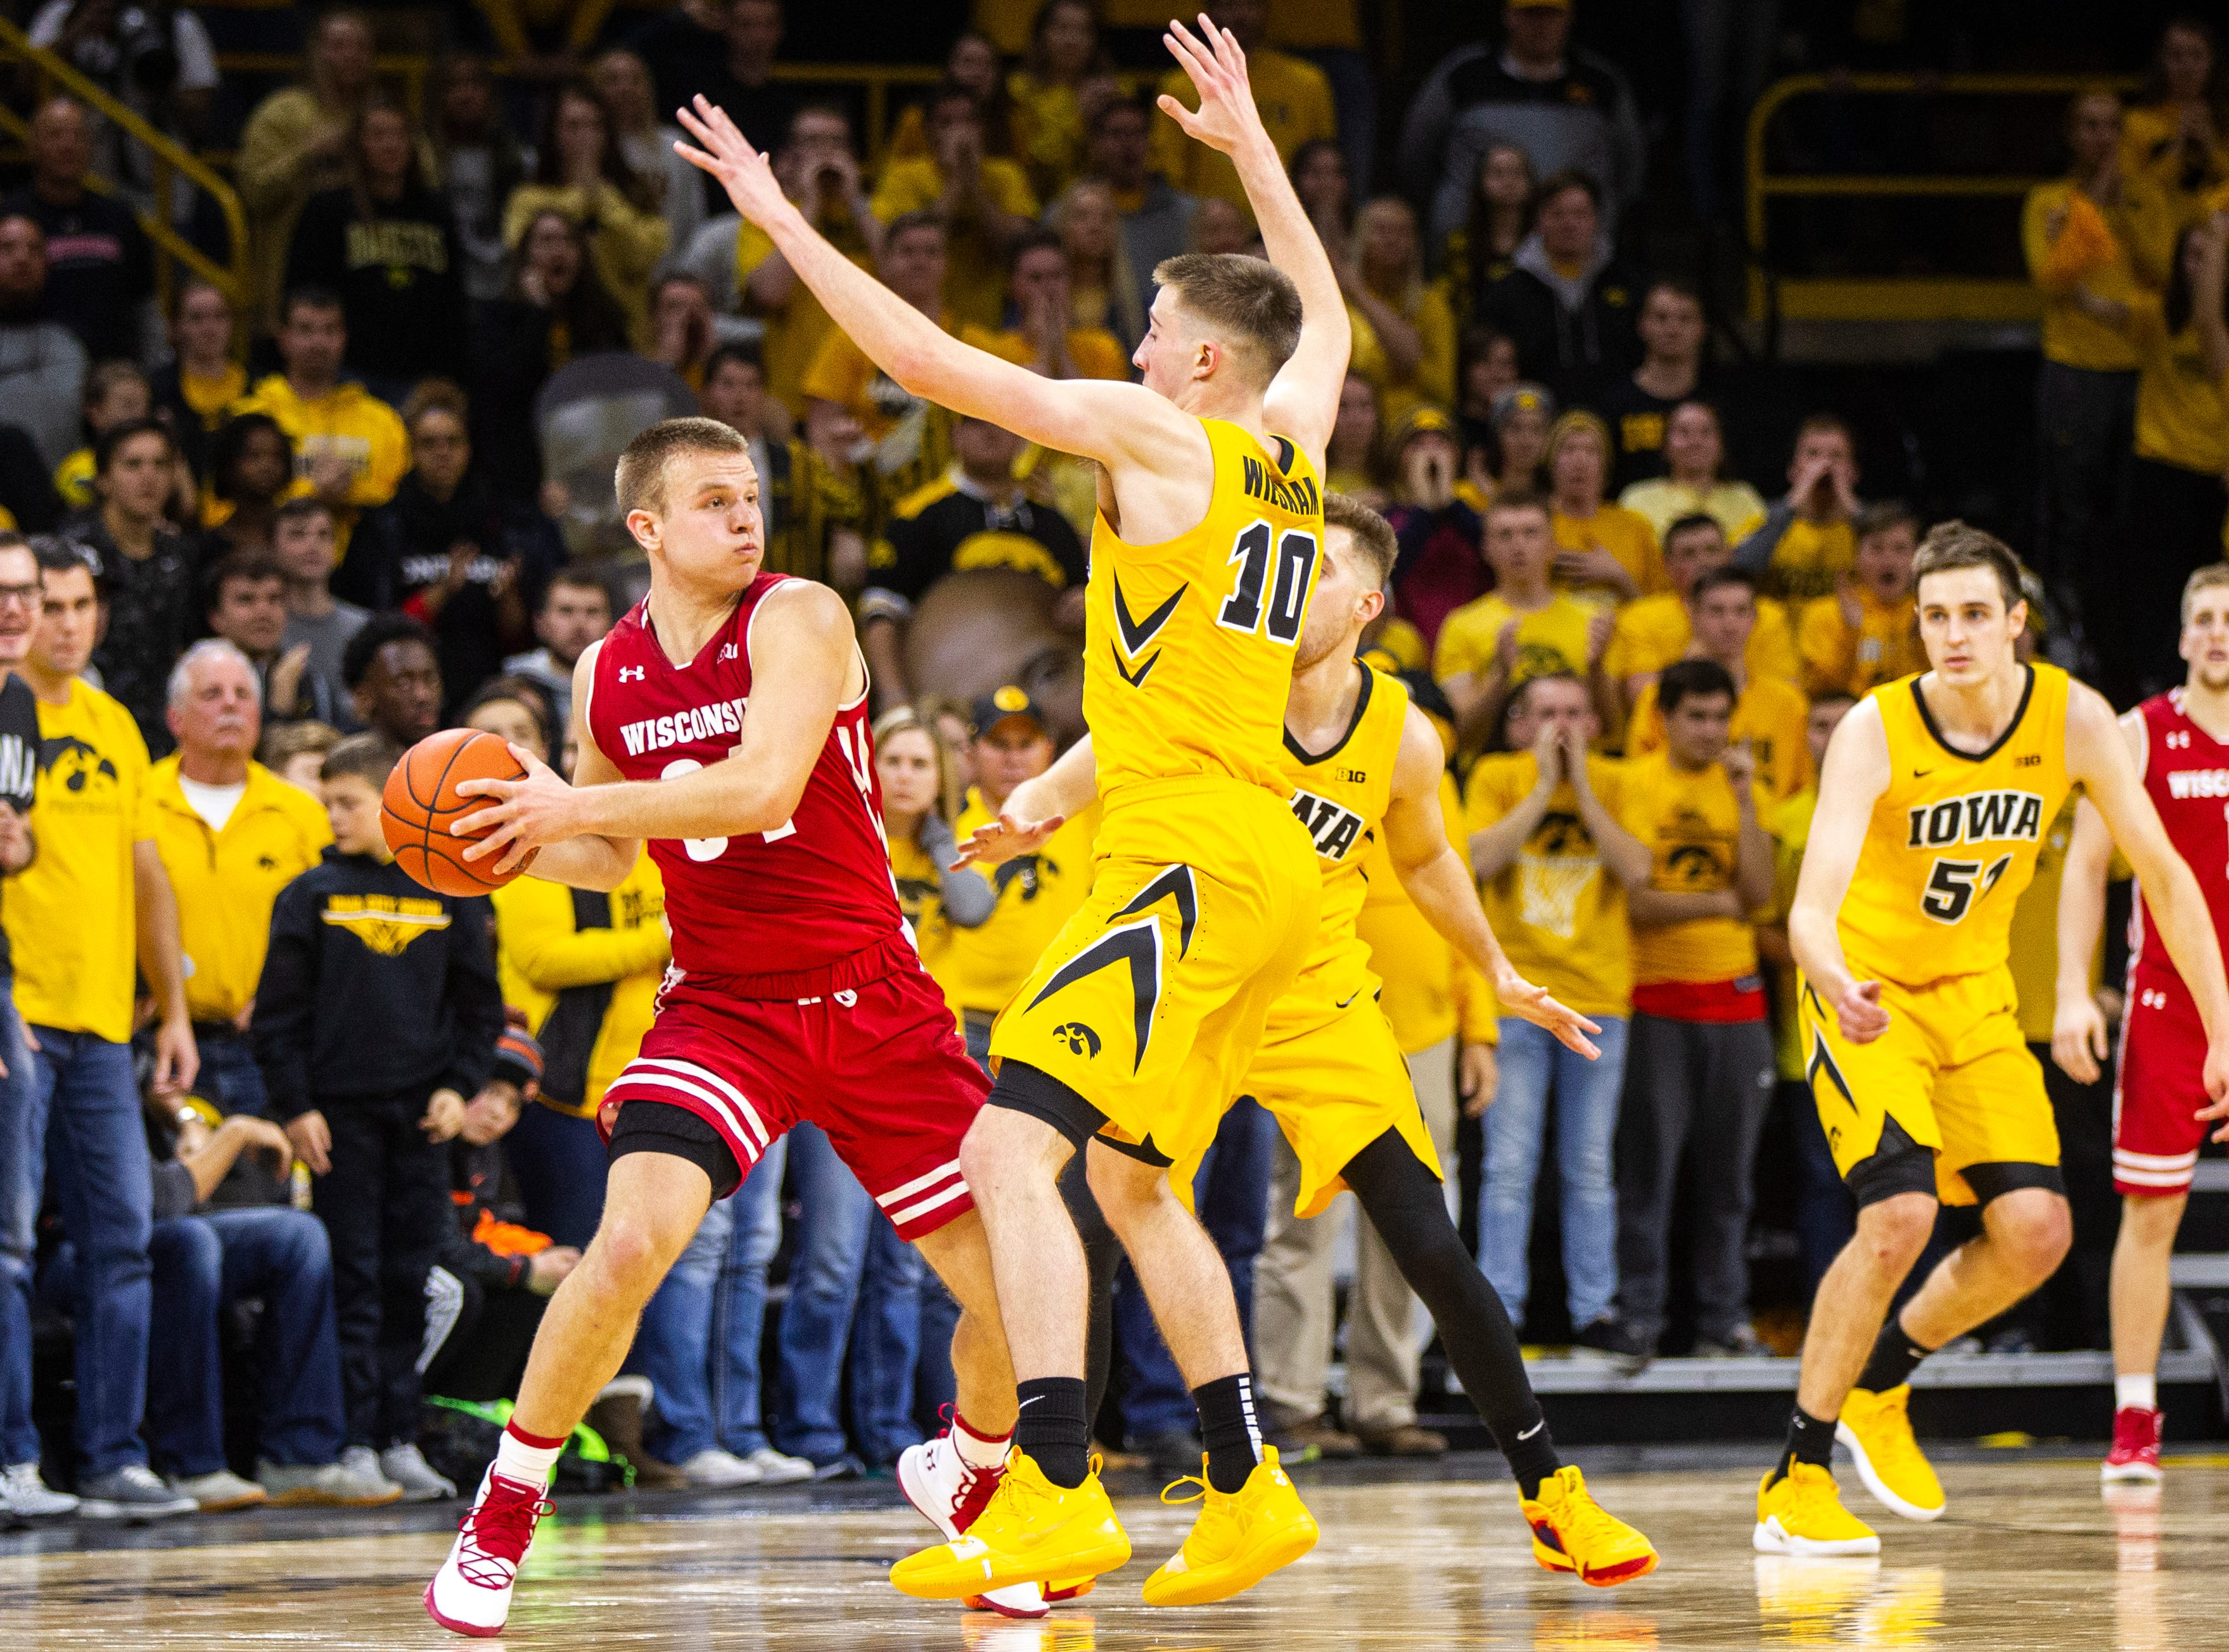 Wisconsin's Brad Davidson (34) looks to pass while being defended by Iowa guard Joe Wieskamp (10) and Iowa guard Jordan Bohannon (3) during a NCAA Big Ten Conference men's basketball game on Friday, Nov. 30, 2018, at Carver-Hawkeye Arena in Iowa City.